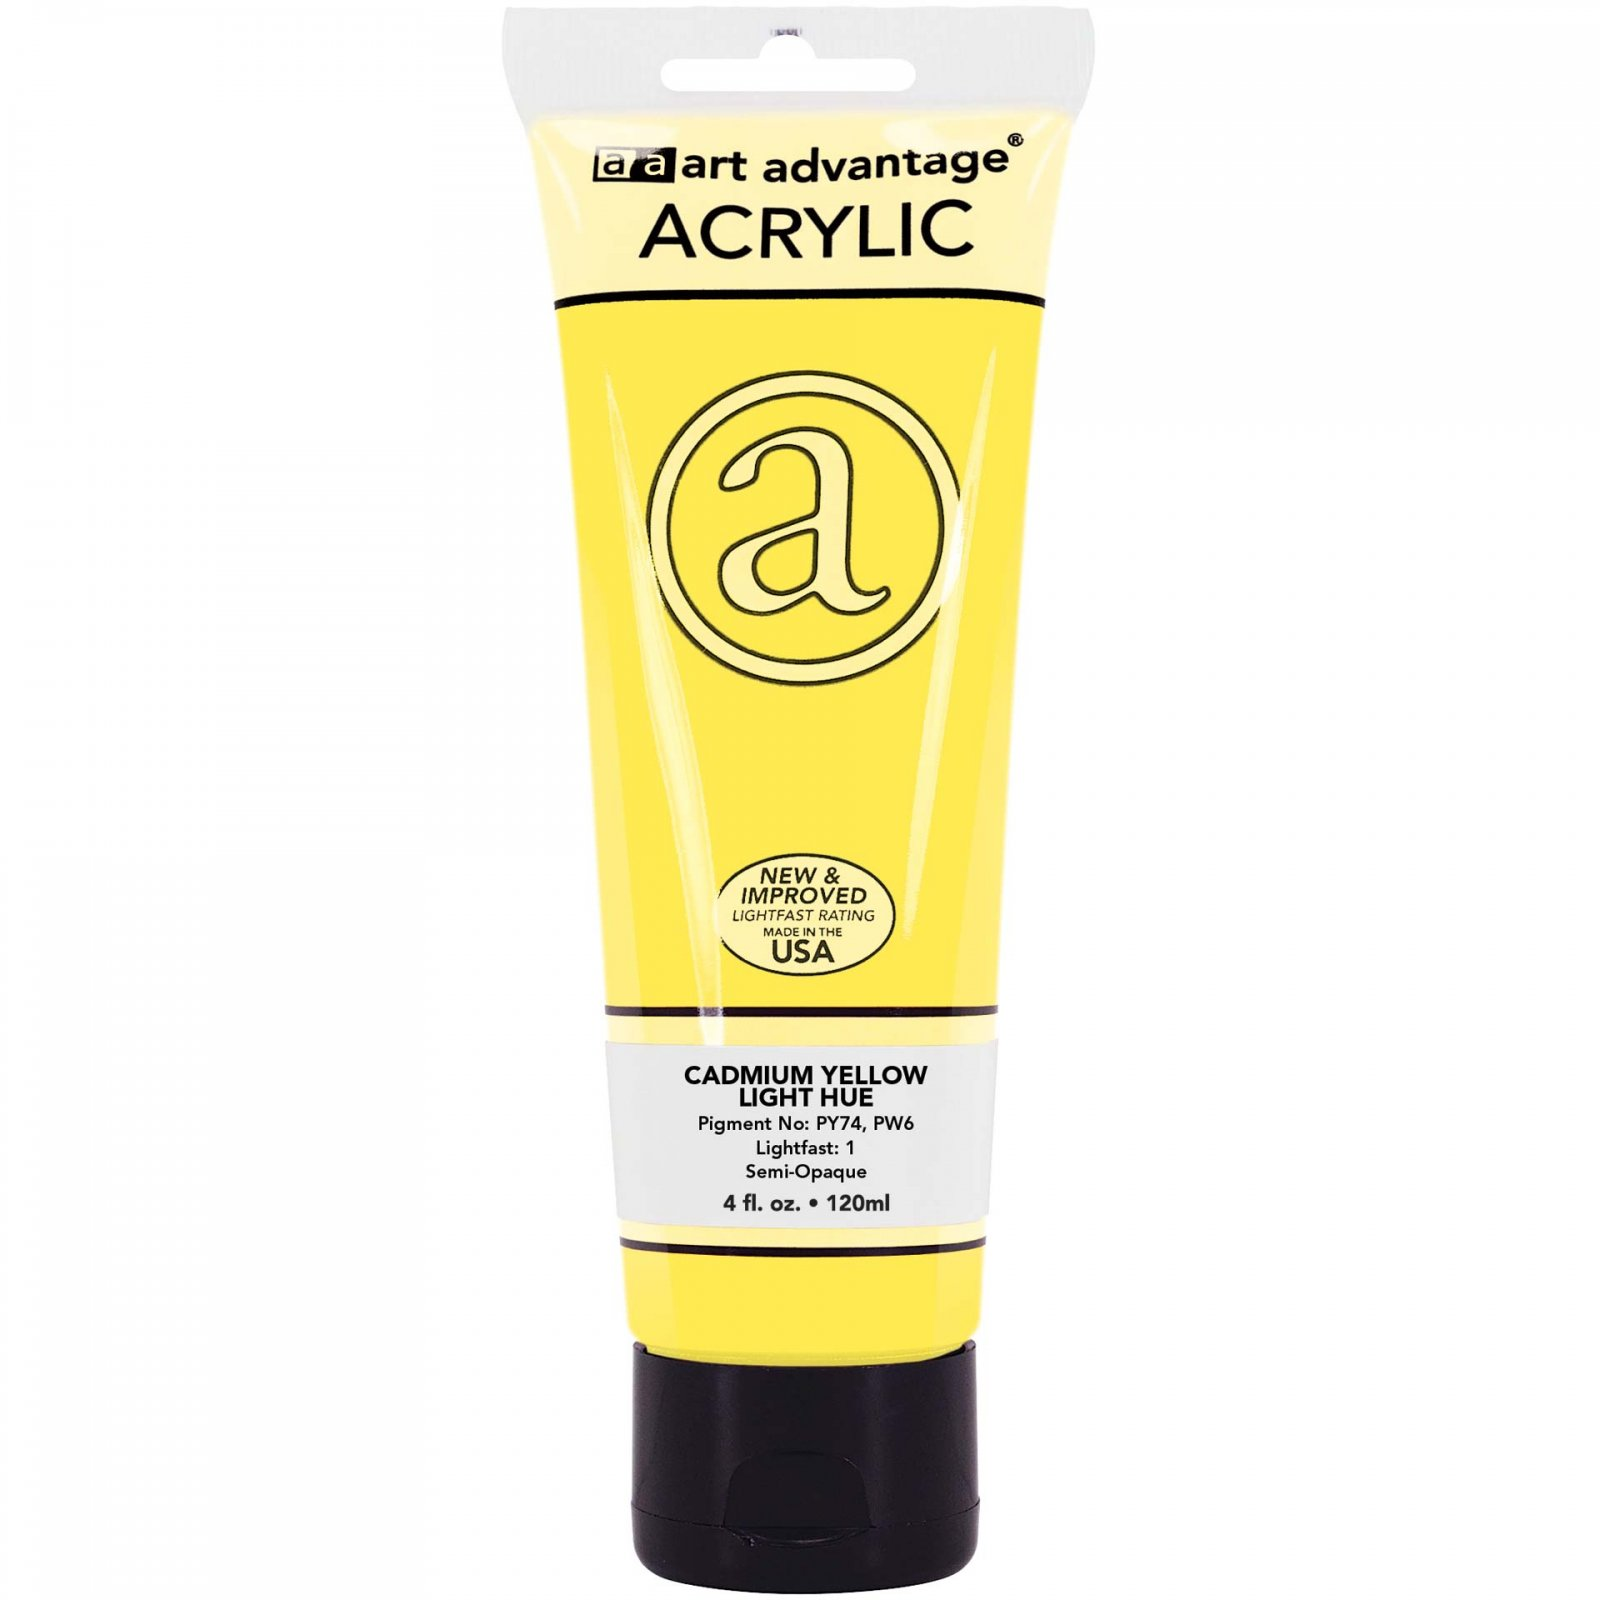 Art Advantage Acrylic 4 oz. tube